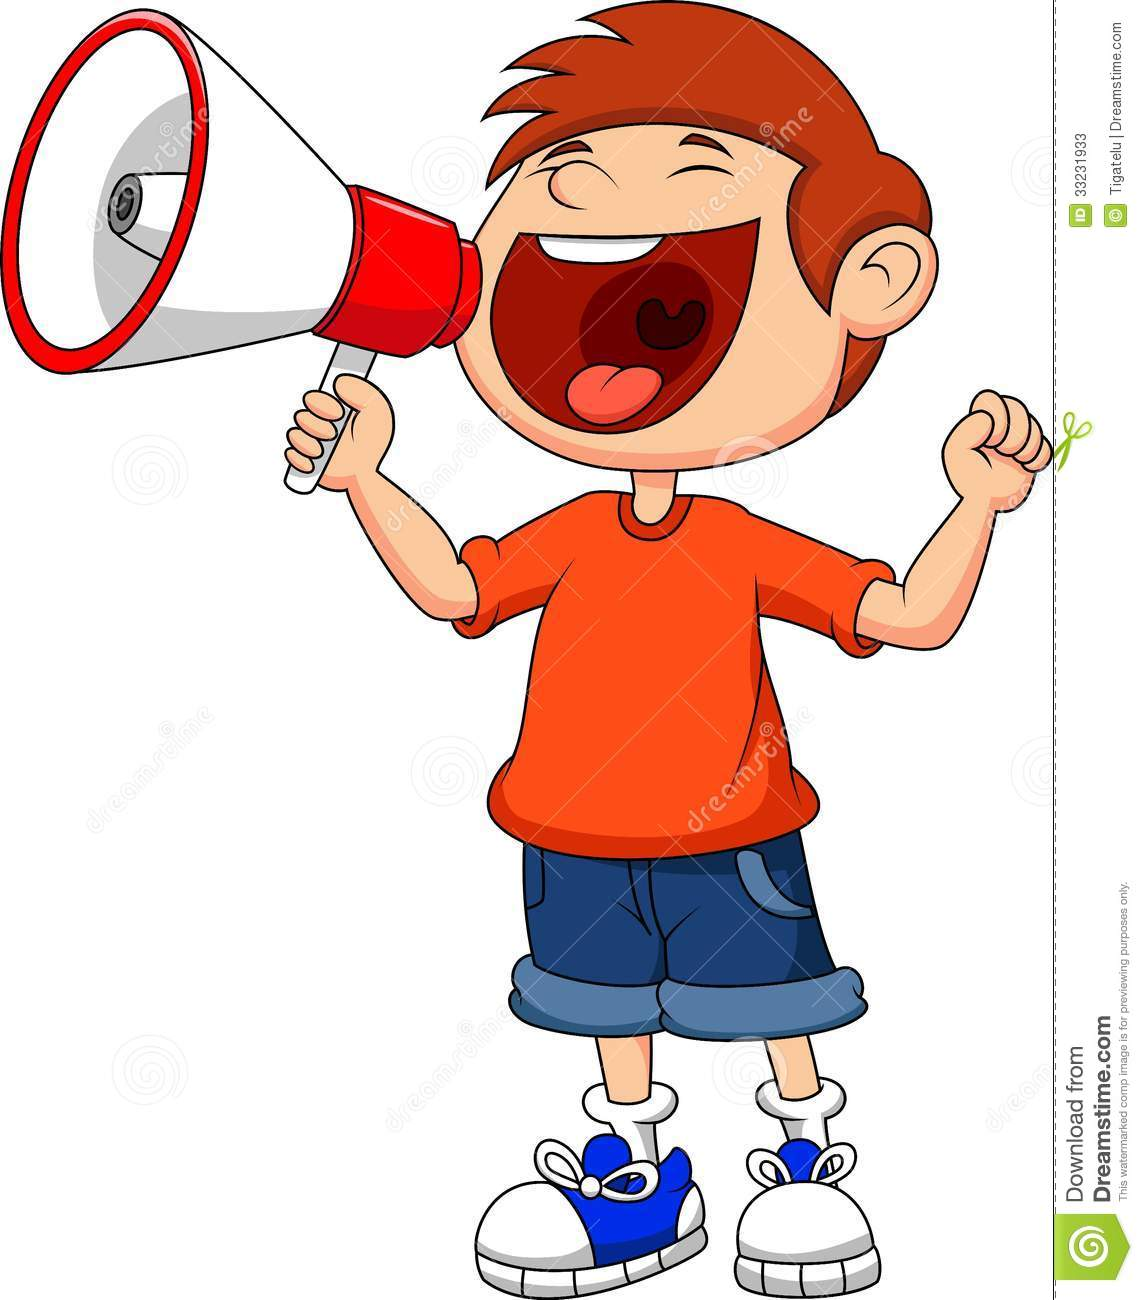 1143x1300 Yelling In Megaphone Clipart Image